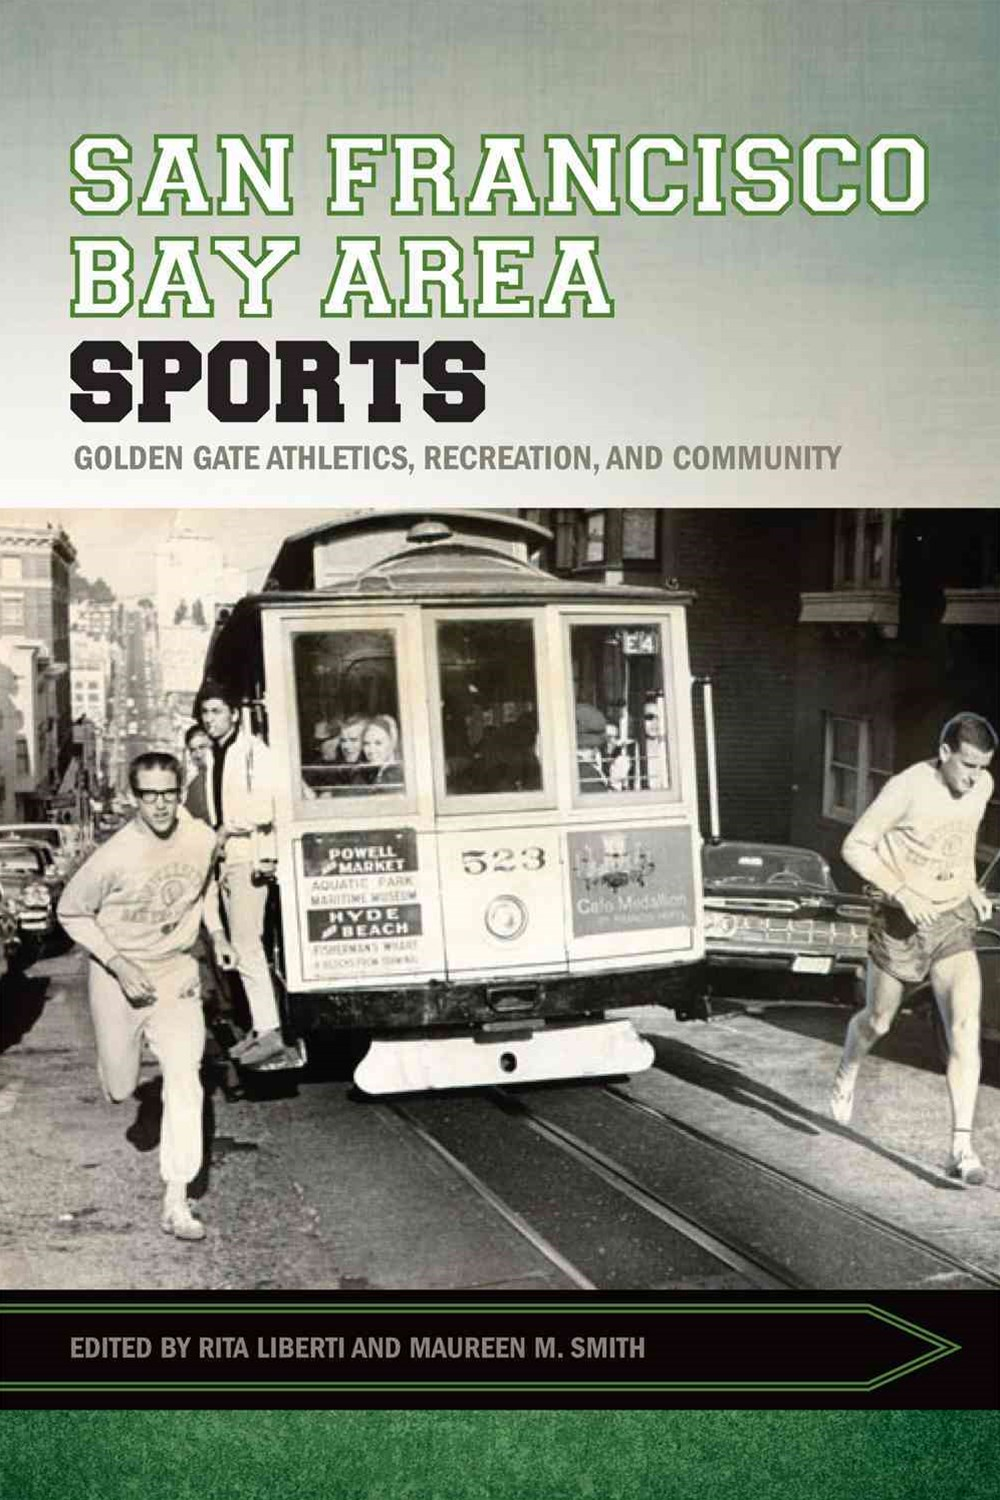 San Francisco Bay Area Sports